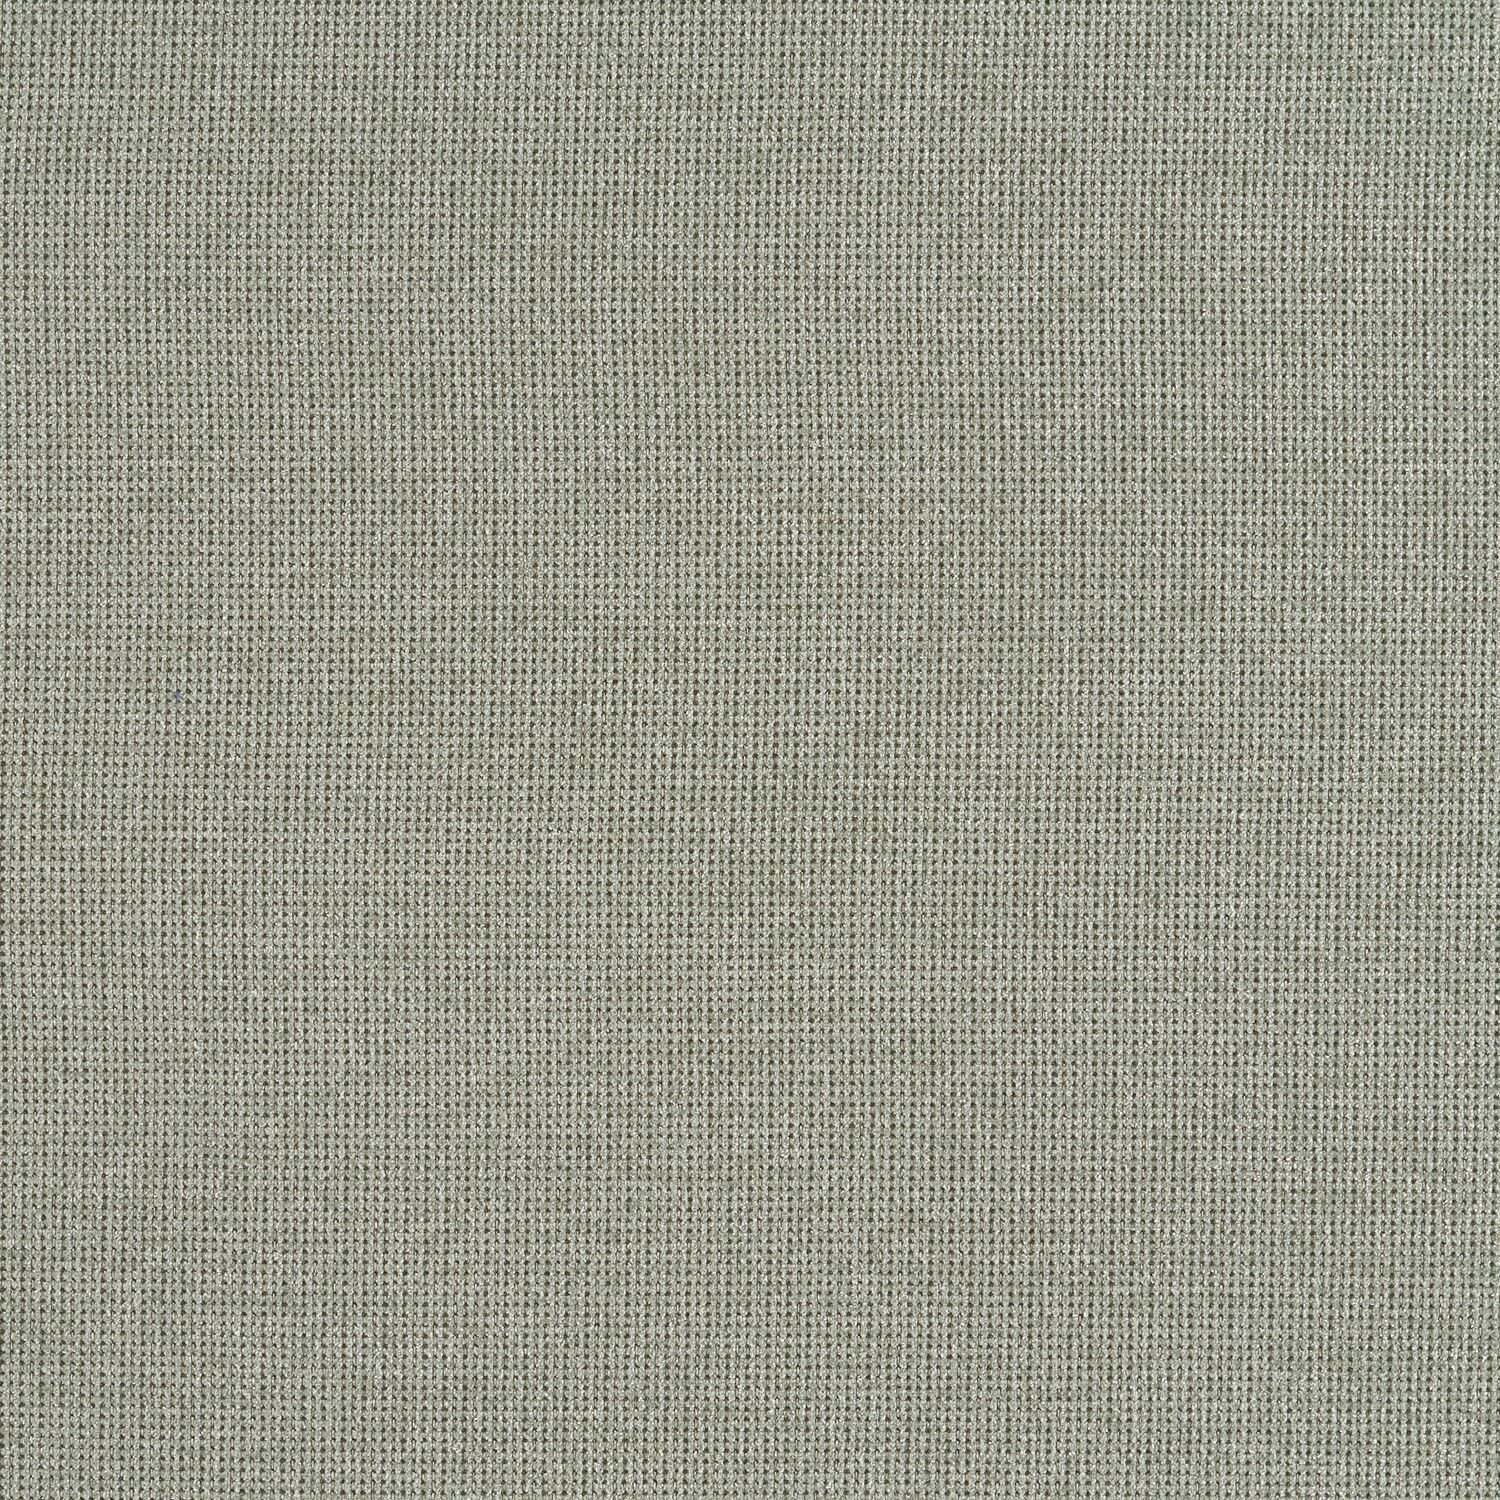 Doyenne - Verdigris - 4078 - 07 - Half Yard Tileable Swatches